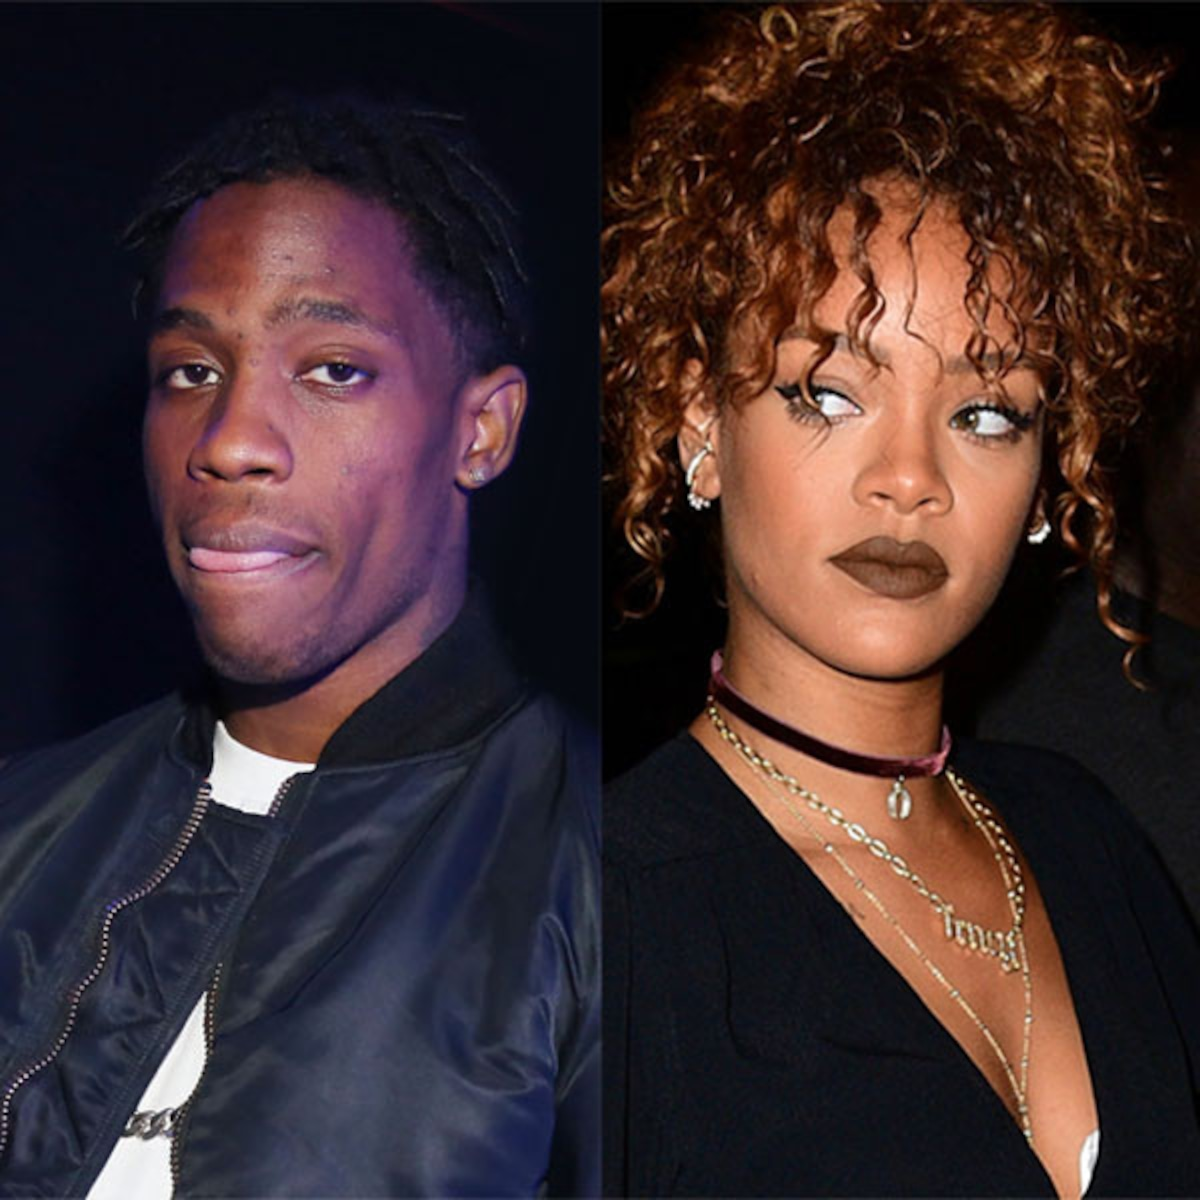 Dating rihanna who is Who Is